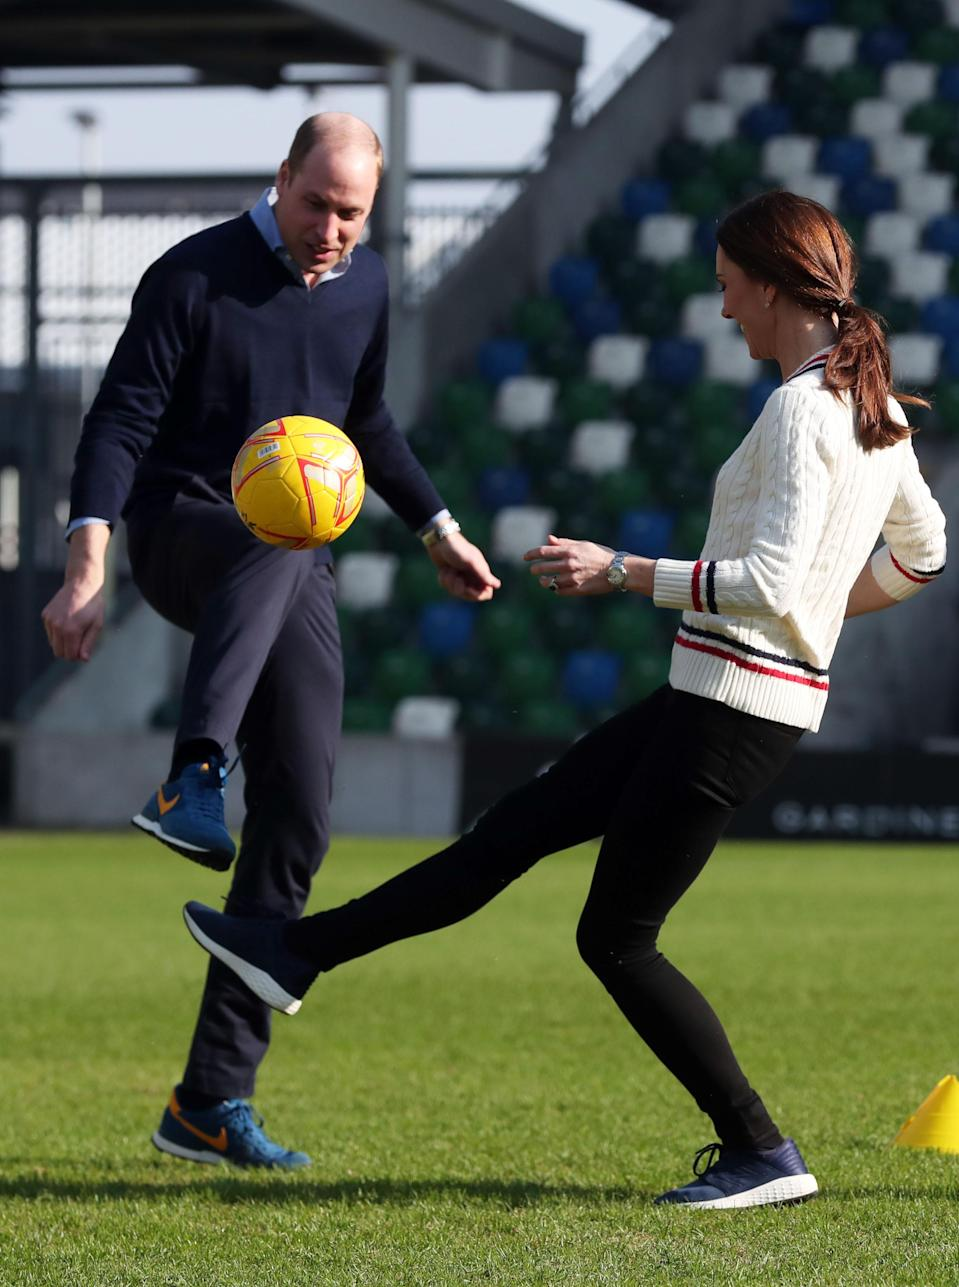 The Duke & Duchess of Cambridge visit the National Stadium Belfast, home of the Irish Football Association on February 27, 2019. They met groups and representatives from the Female Football Leaders, the Goals Programme, Education Programme, Stay Onside, PSNI, DoJ and Probation Service and members of Powerchair. (Photo: Kelvin Boyes/Press Eye/Getty Images)